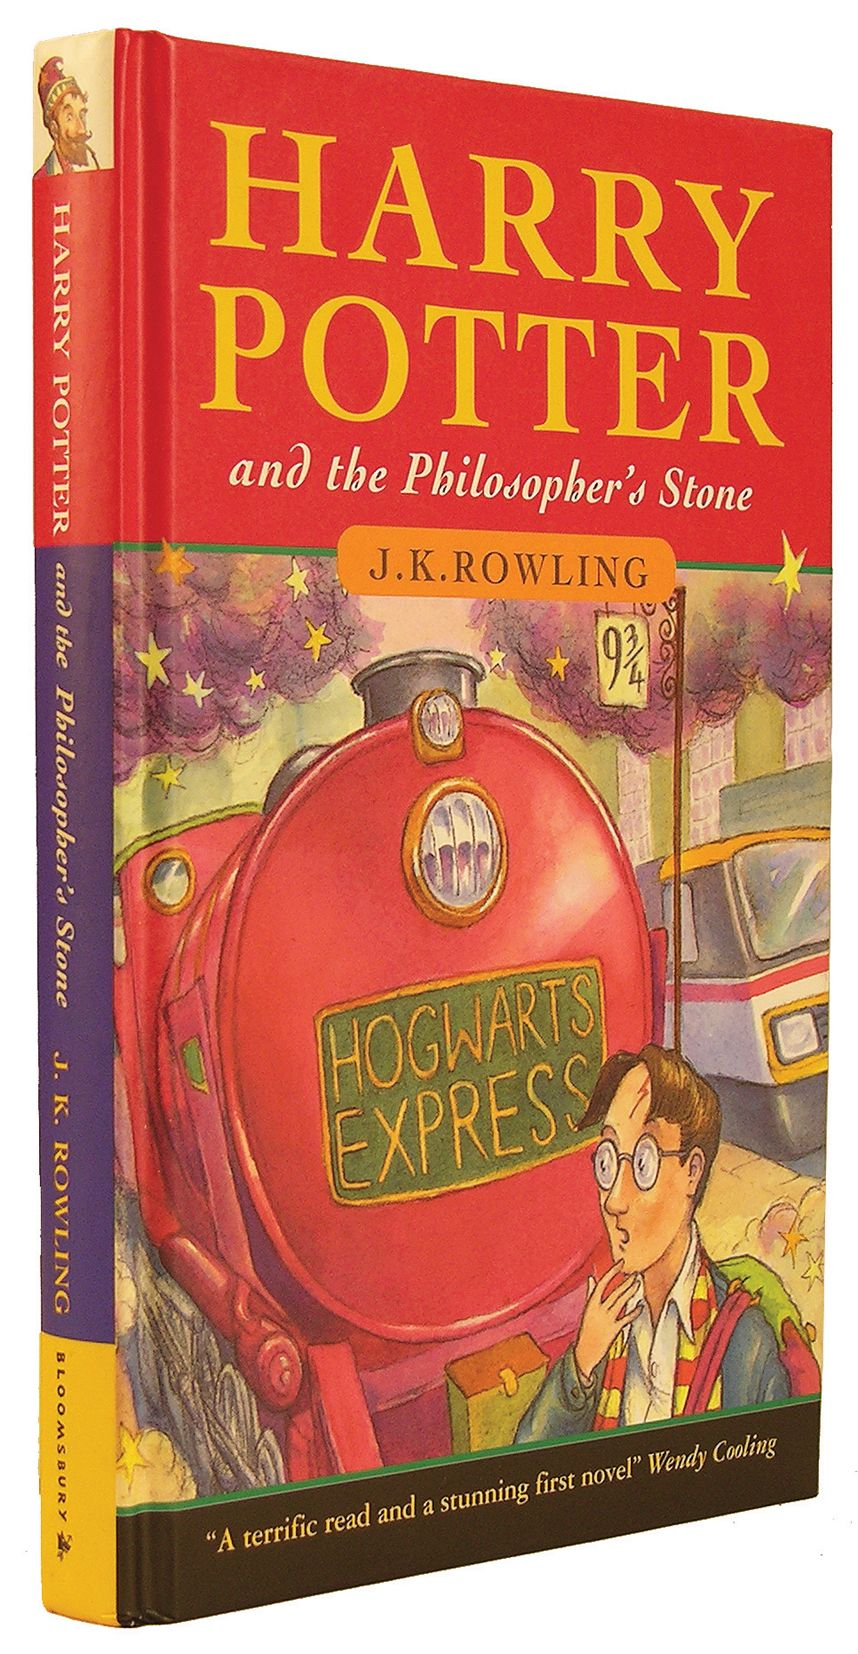 This Is No Ordinary Harry Potter Book This Is An Actual First